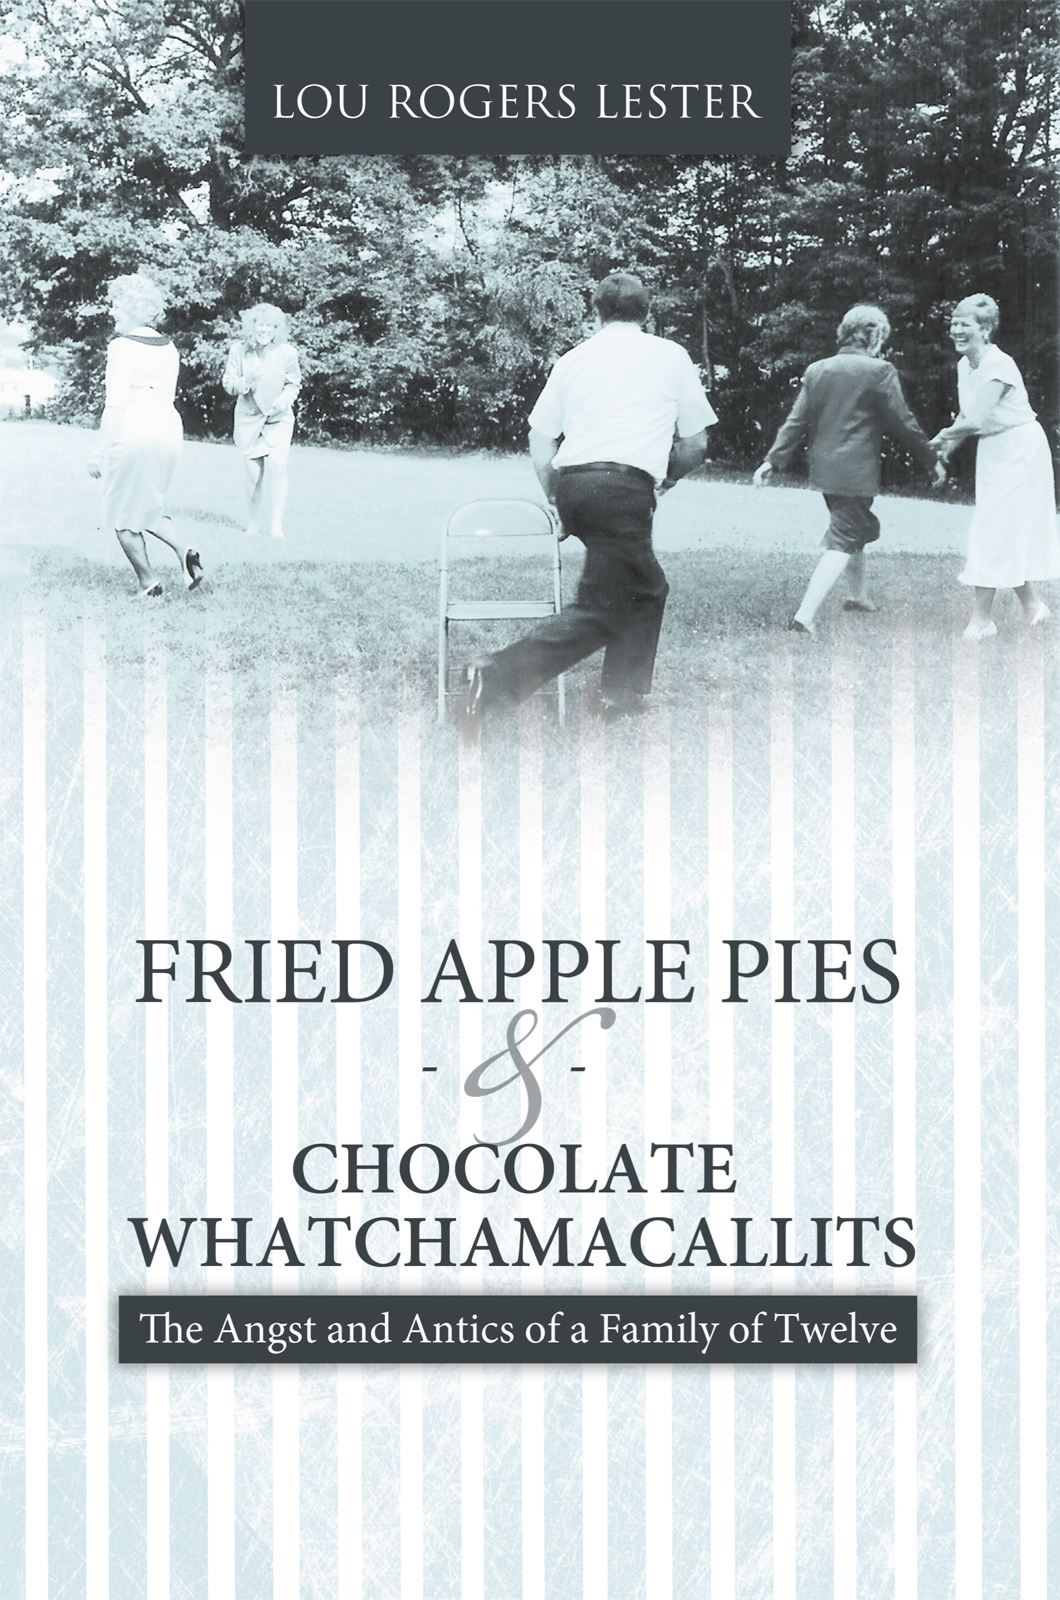 Fried Apple Pies and Chocolate Whatchamacallits